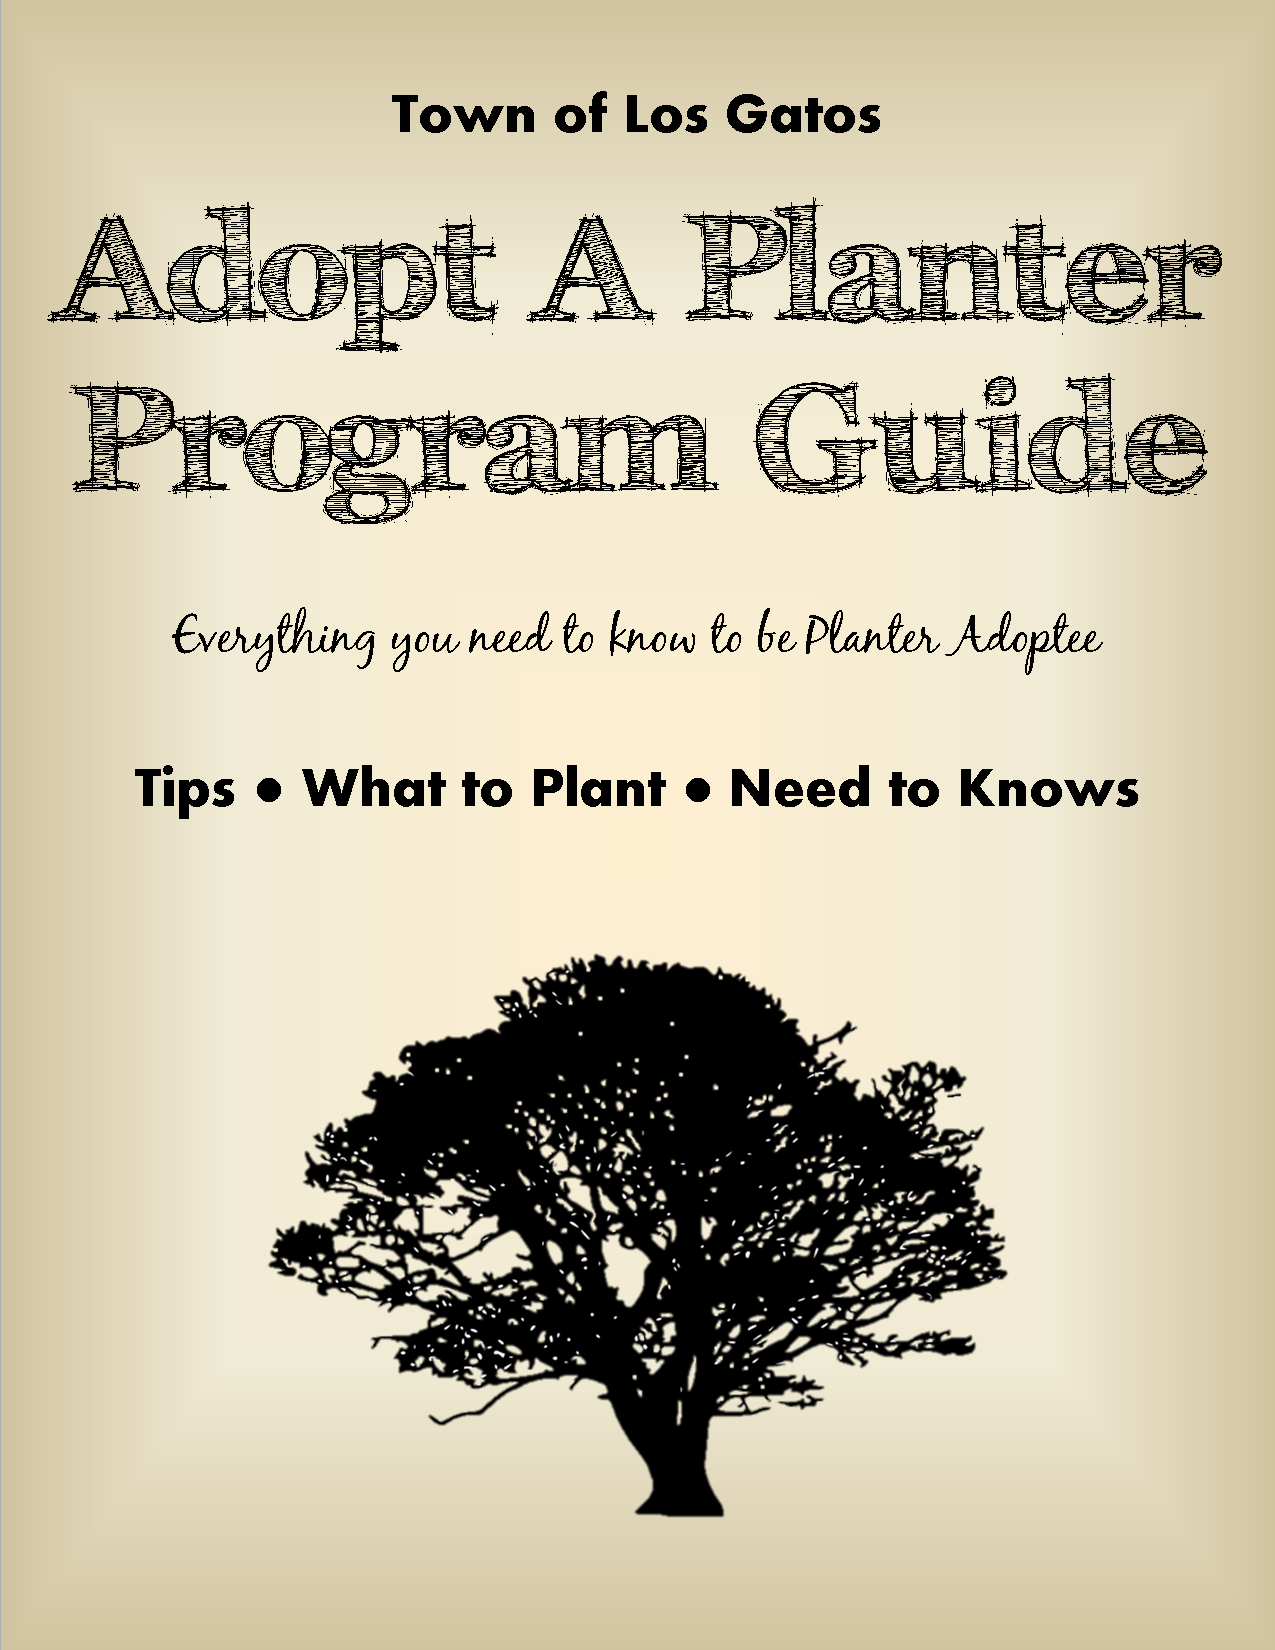 Downtown Planter Guidelines and Recommendations3